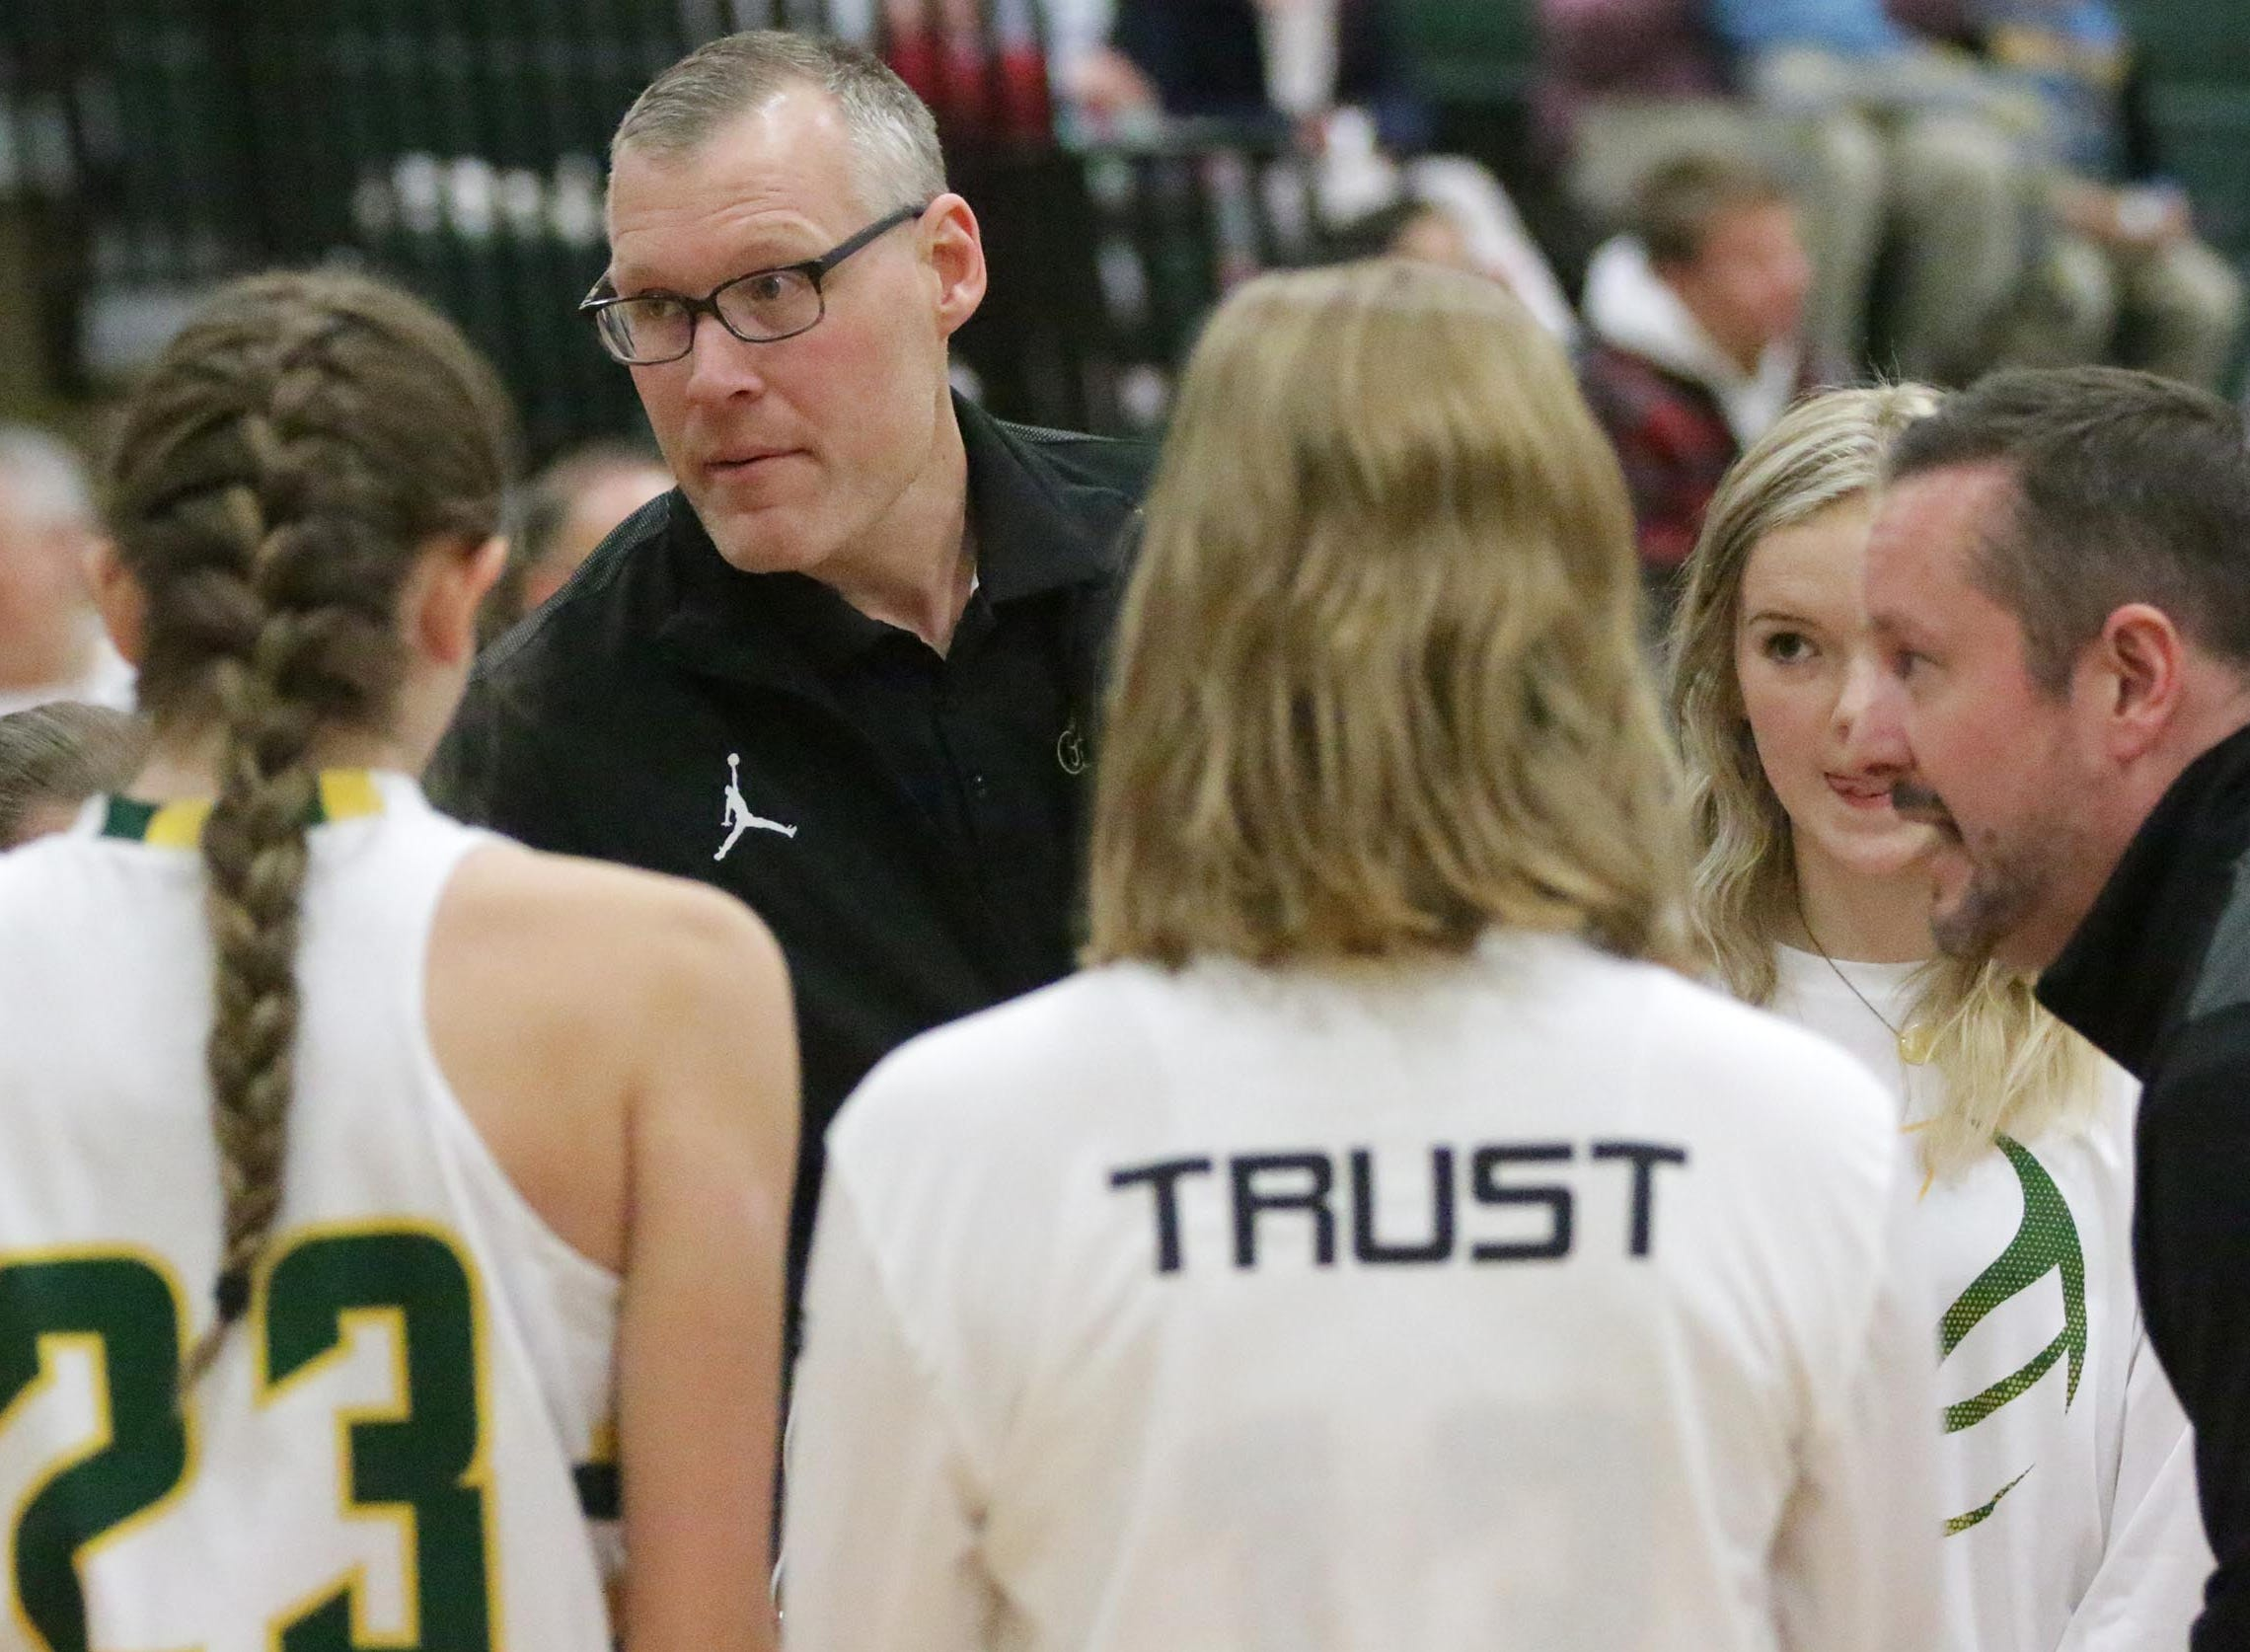 Sheboygan Lutheran coaches talk strategy with their team during a time out against Sheboygan Christian, Thursday, January 24, 2019, in Sheboygan, Wis.